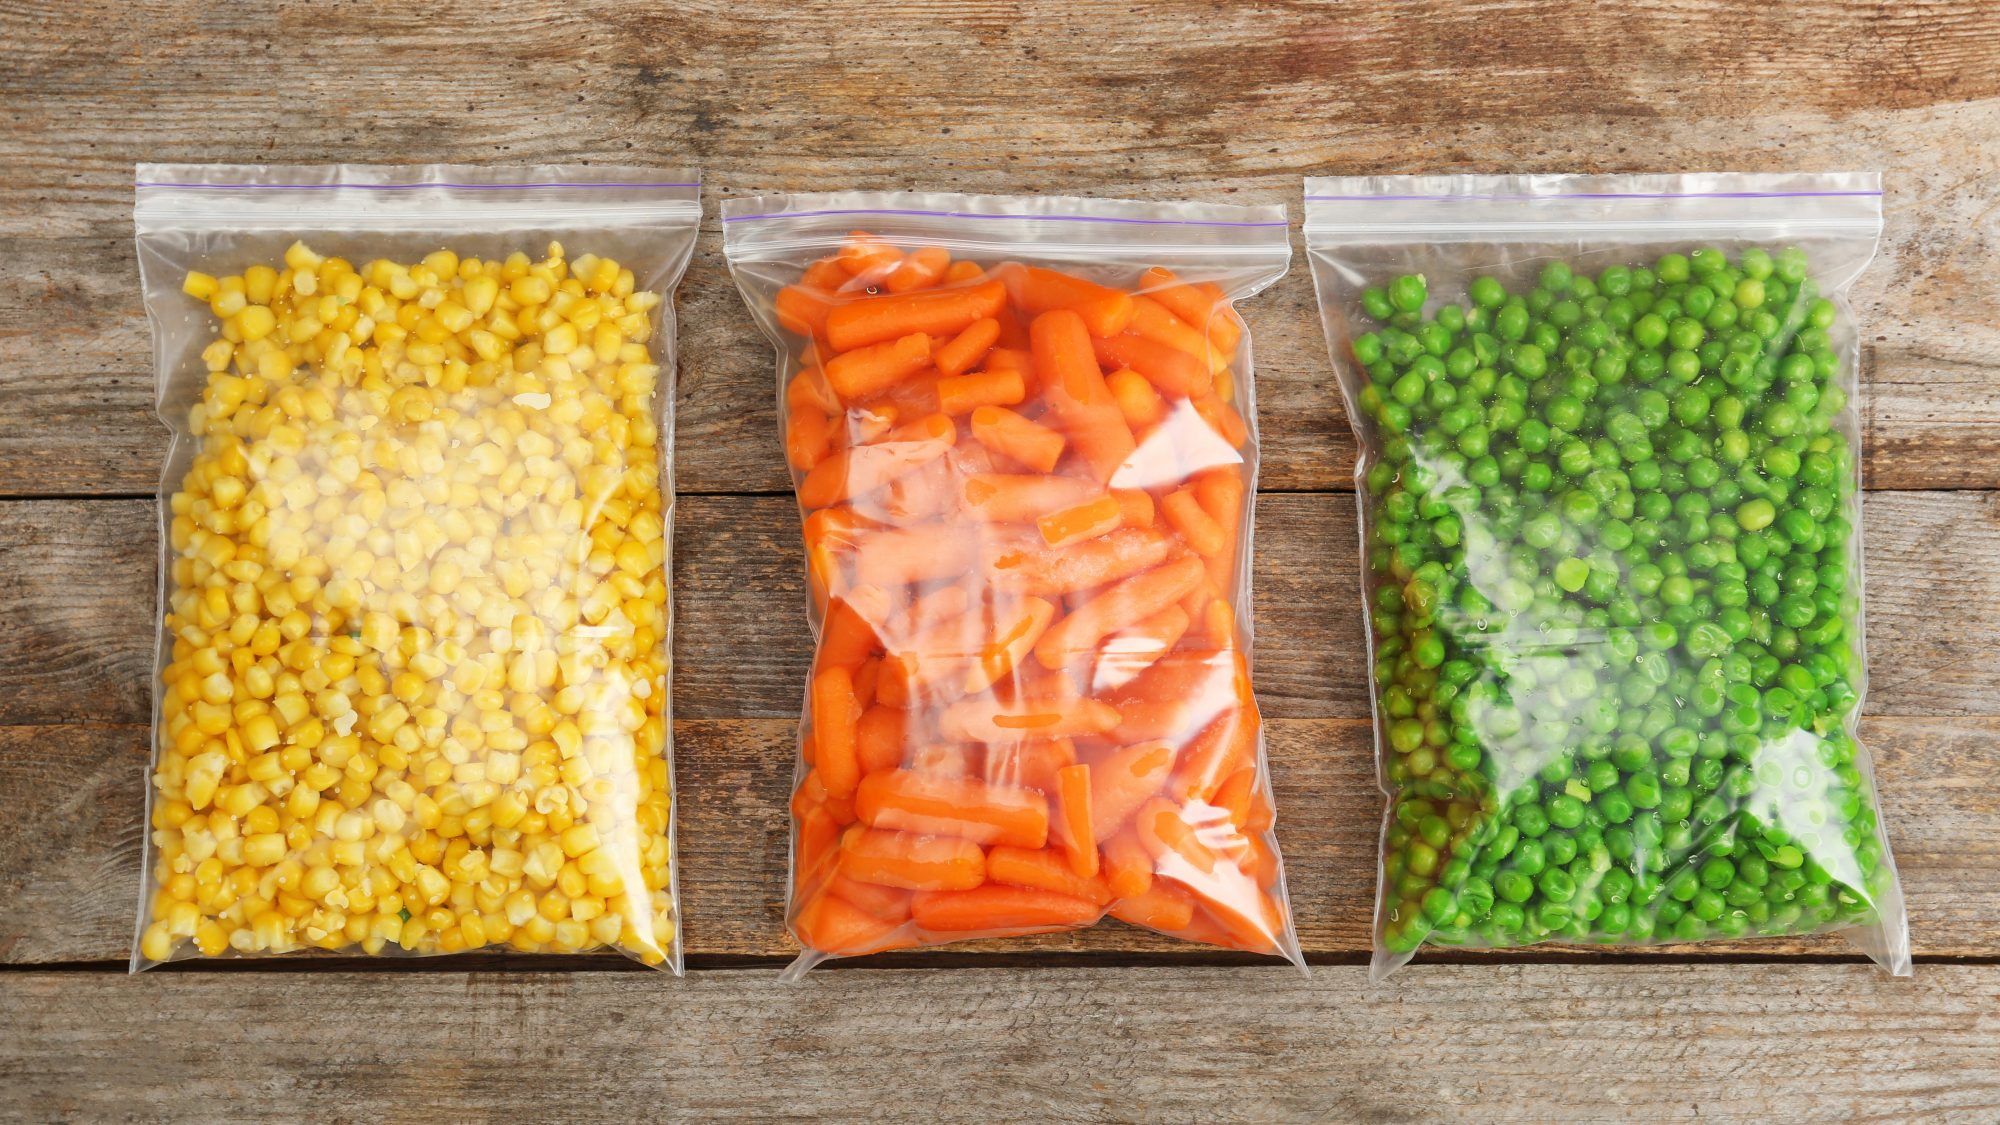 Meal Prep: Plastic bags with frozen vegetables on wooden background, top view